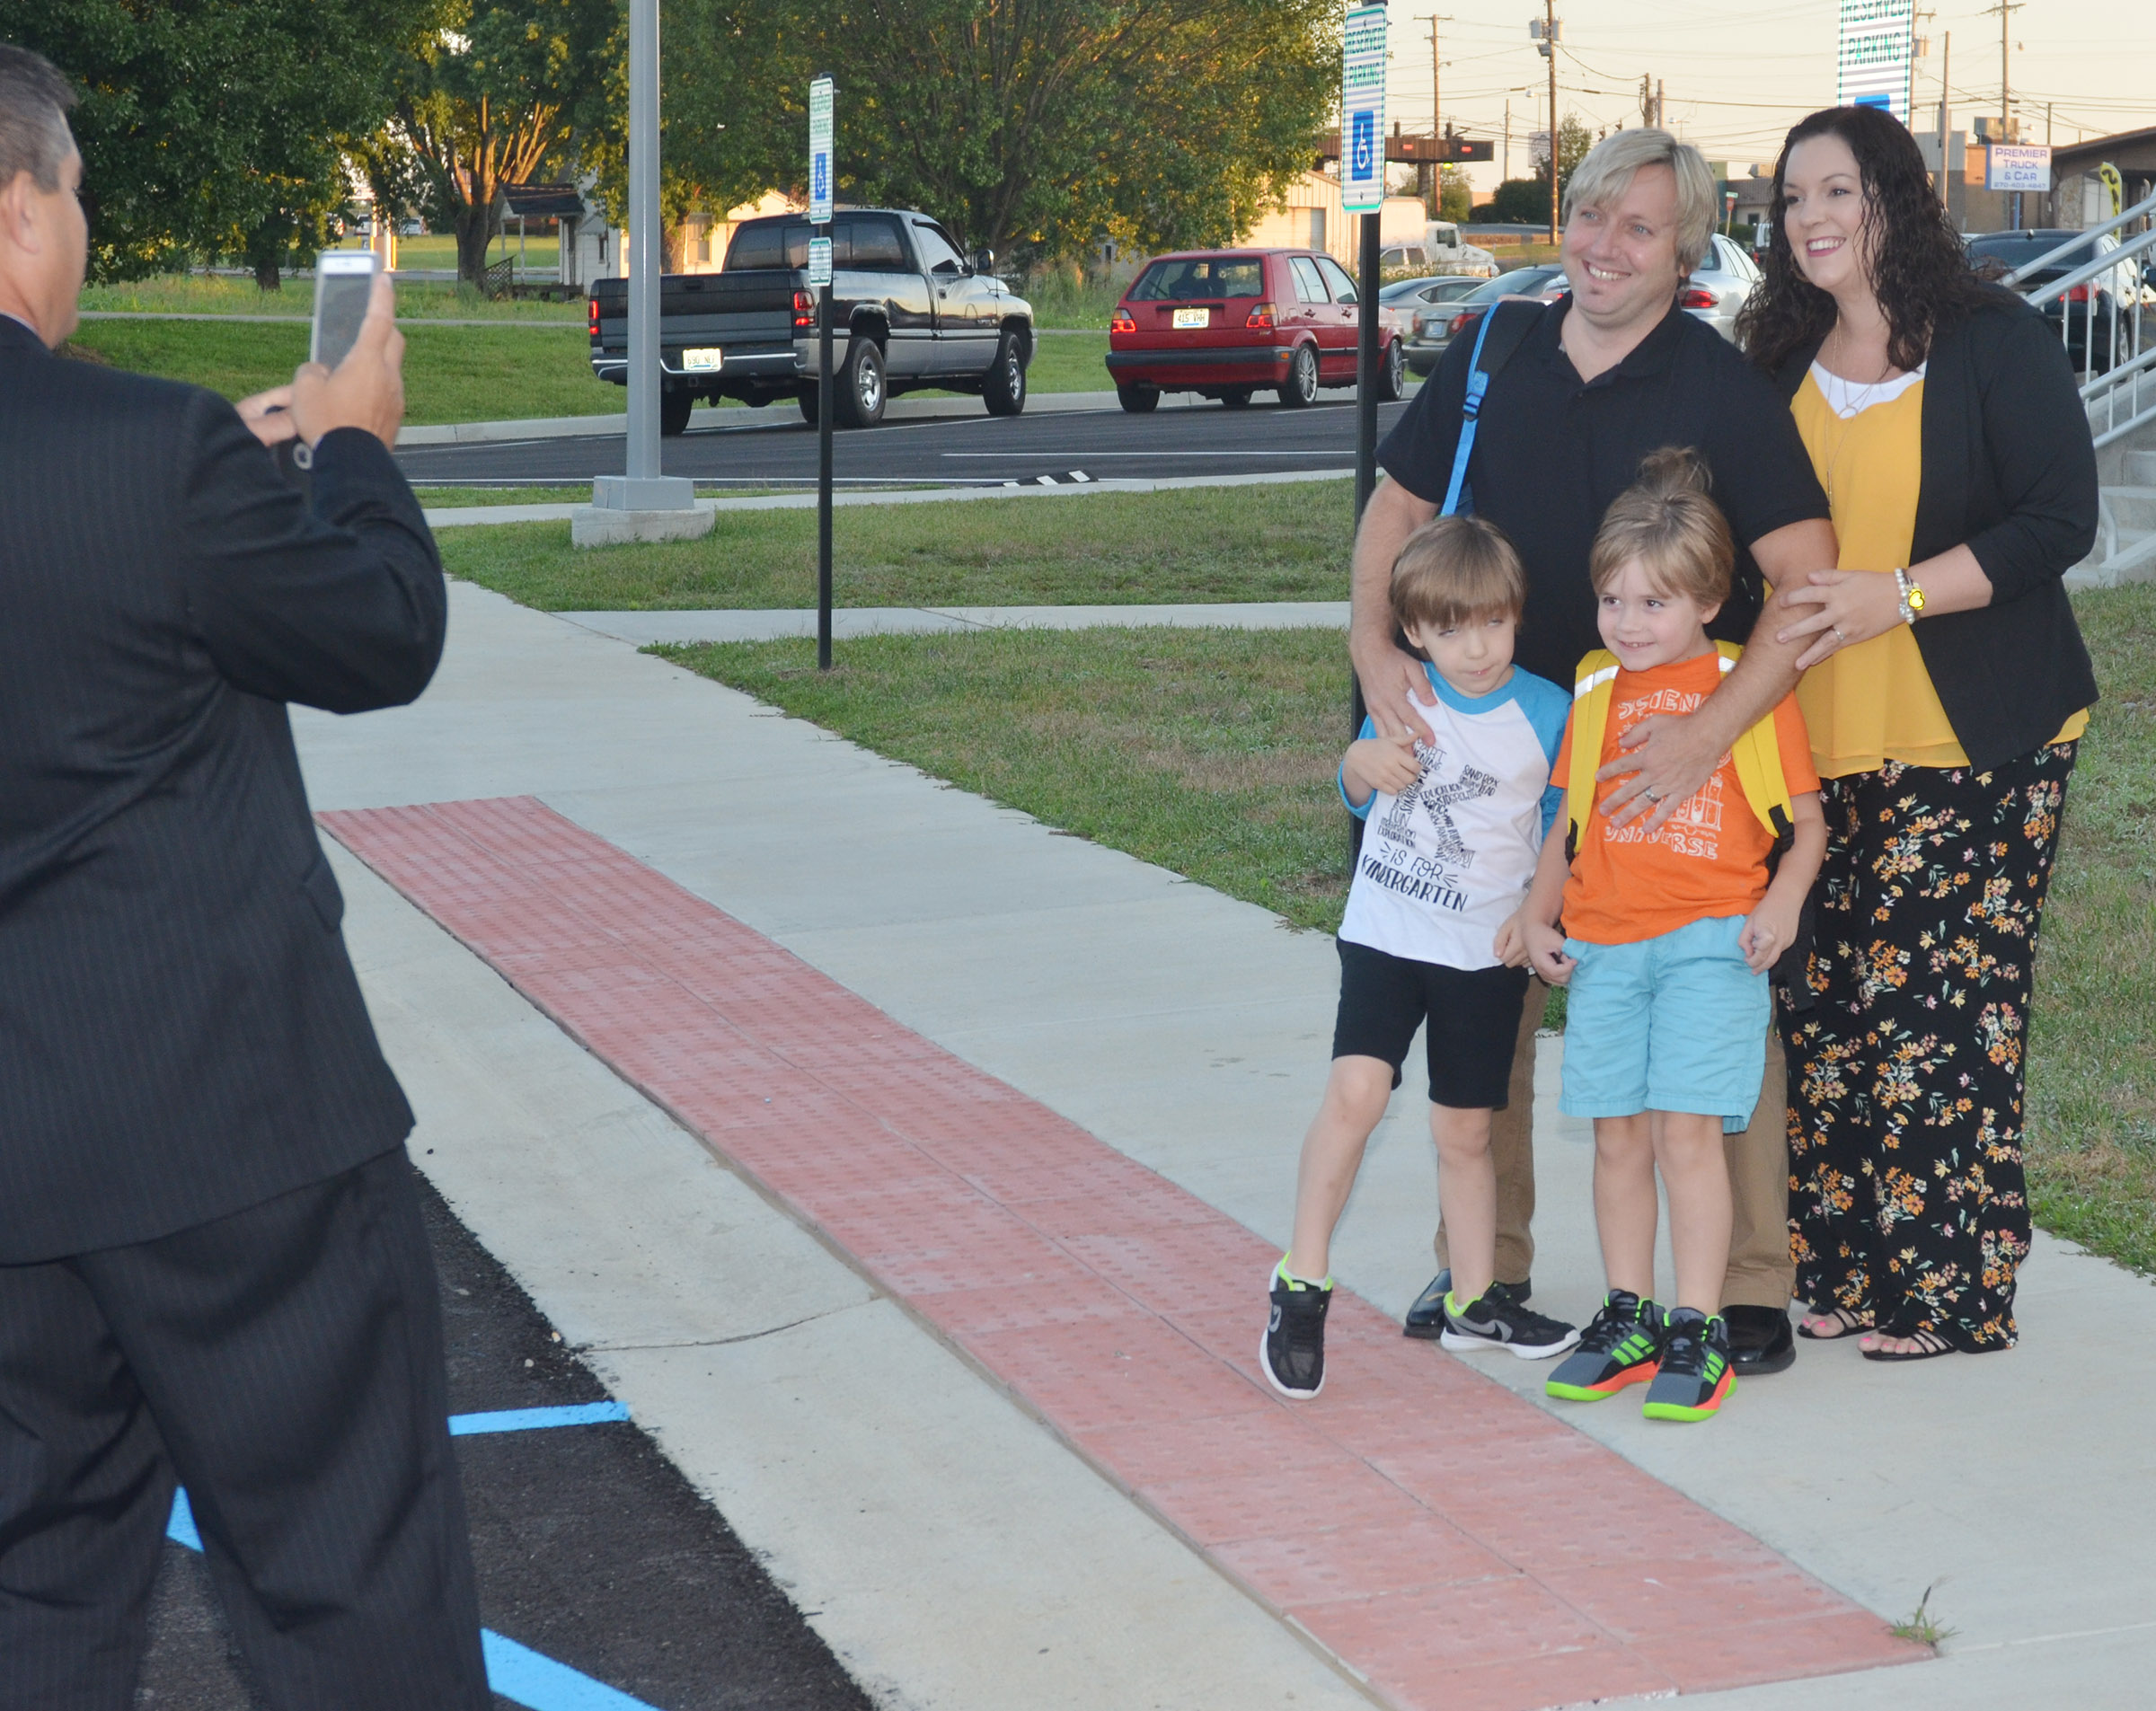 CIS Superintendent Kirby Smith takes a photo of David and Lindsay Williams with their children, kindergartener Finley Williams, at left, and first-grader Gavin Williams. David Williams is an instructional assistant at Campbellsville High School and Lindsay Williams teaches English at CHS.